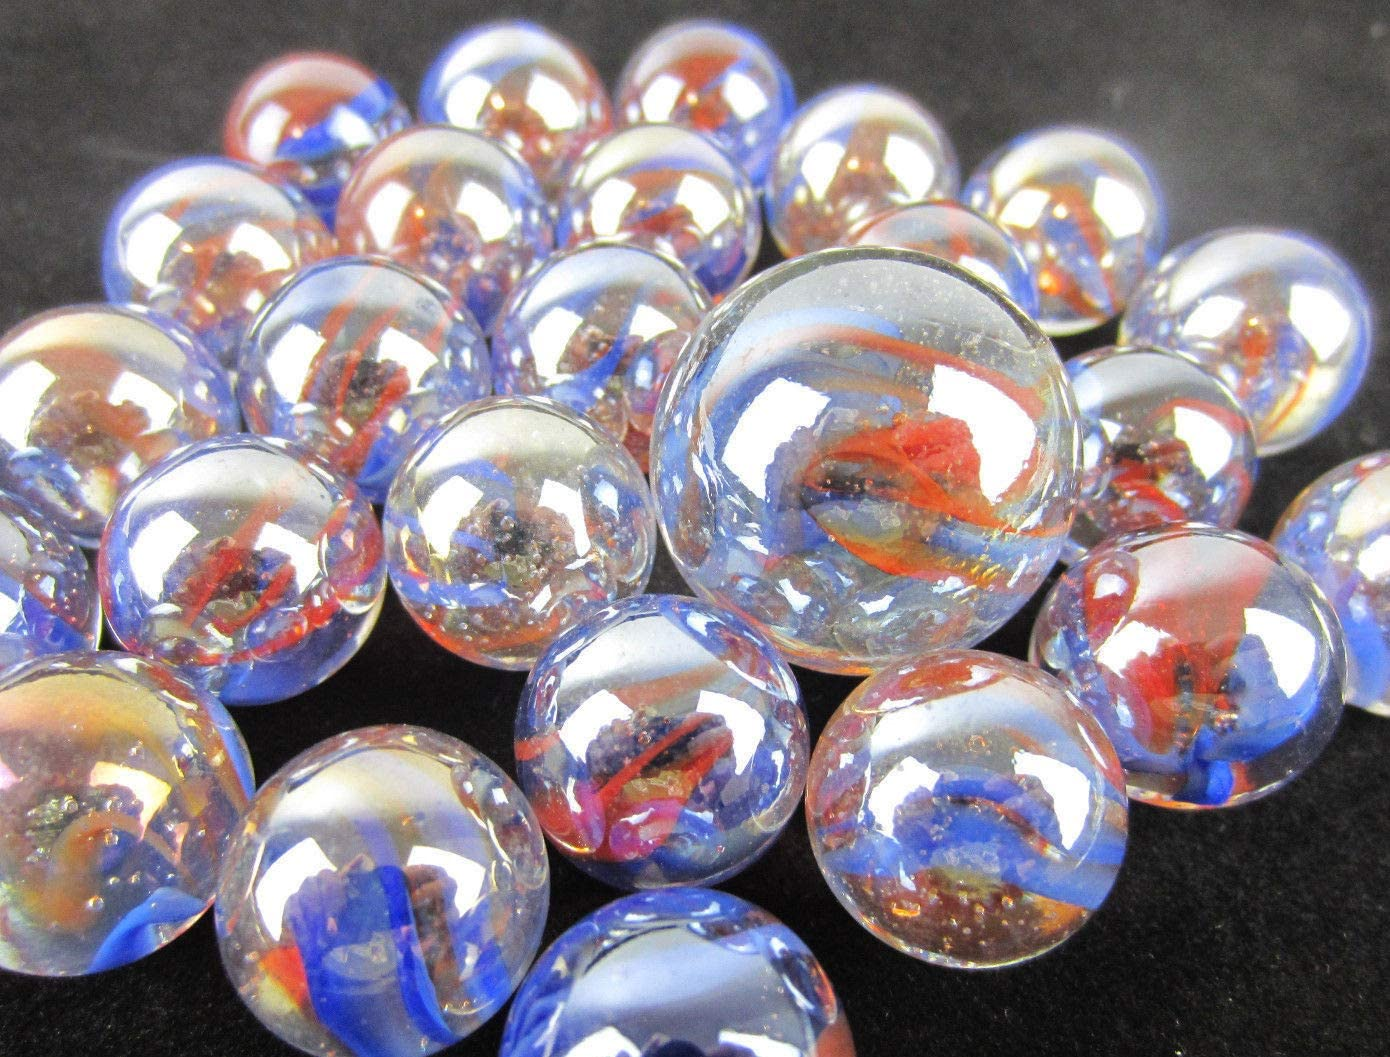 Big Game Toys~25 Glass Marbles Sunrise Iridescent Clear//Blue//red Swirl Classic Style Game Pack Decor//Vase Filler//Aquarium 24 Player, 1 Shooter